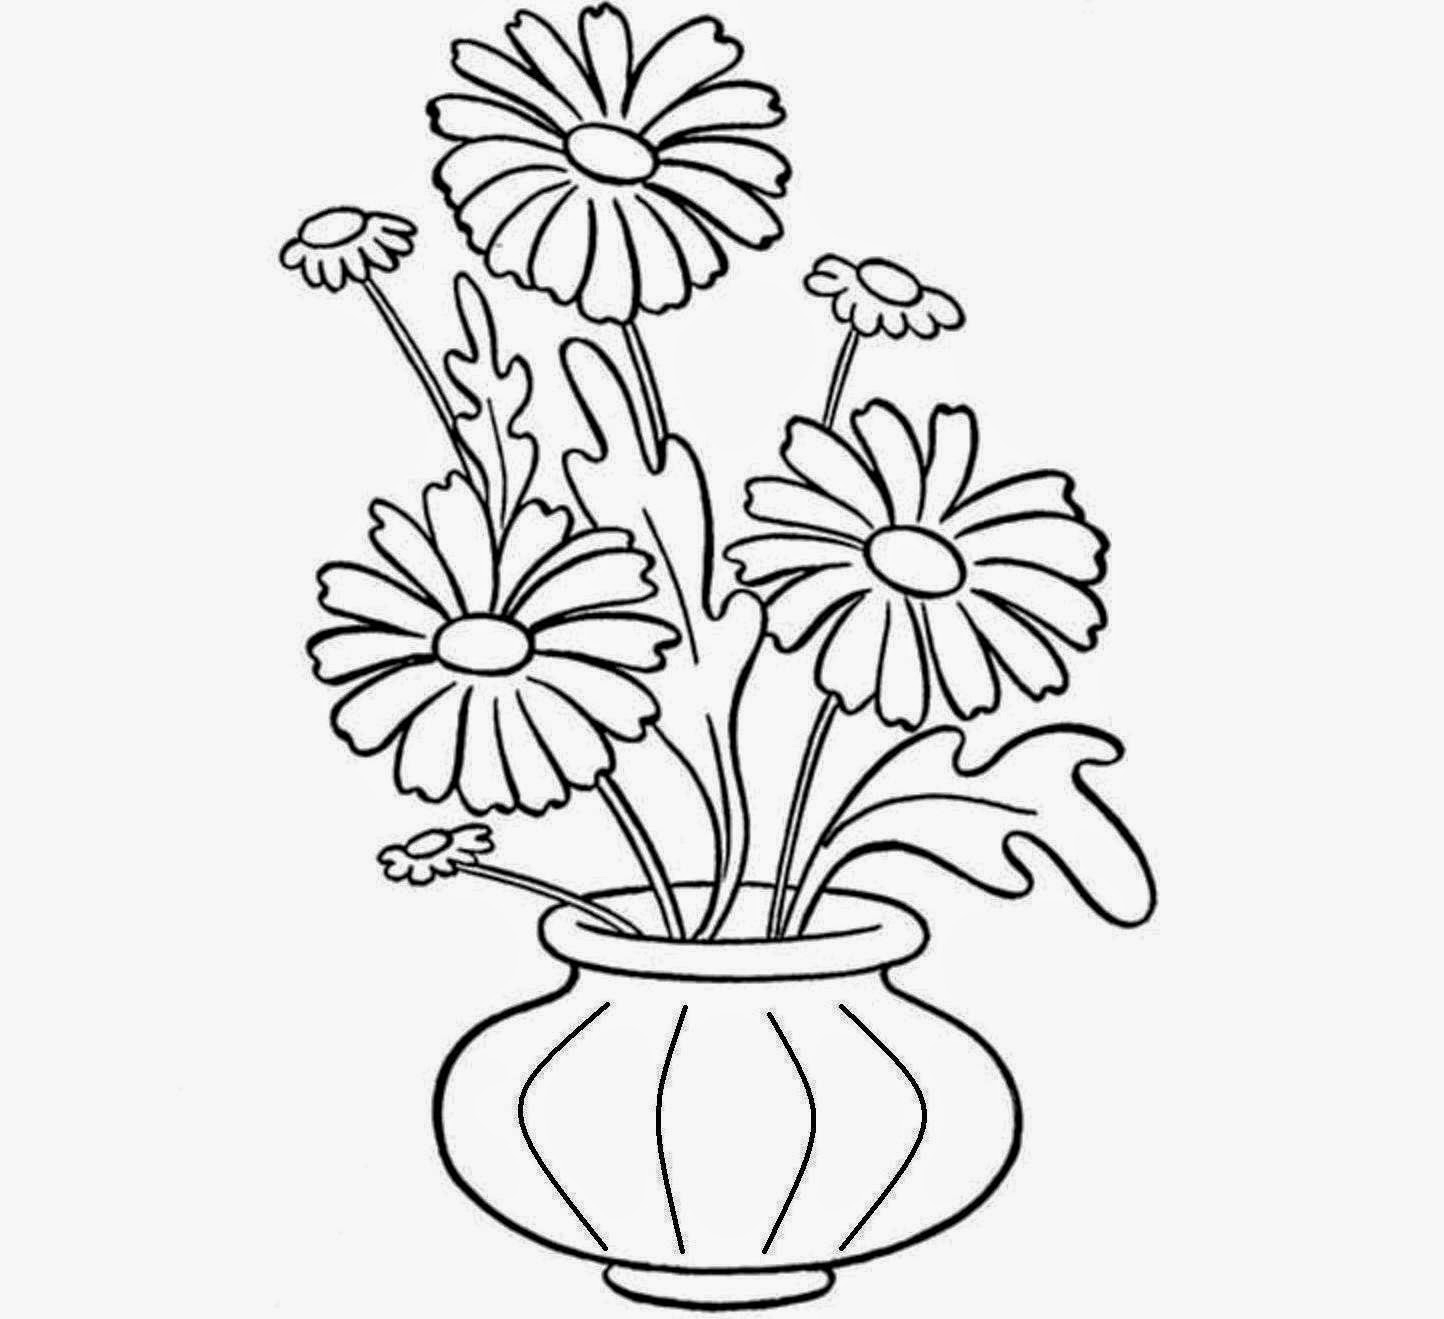 hight resolution of 1444x1319 flower pot draw emages pot plant clipart line drawing flower